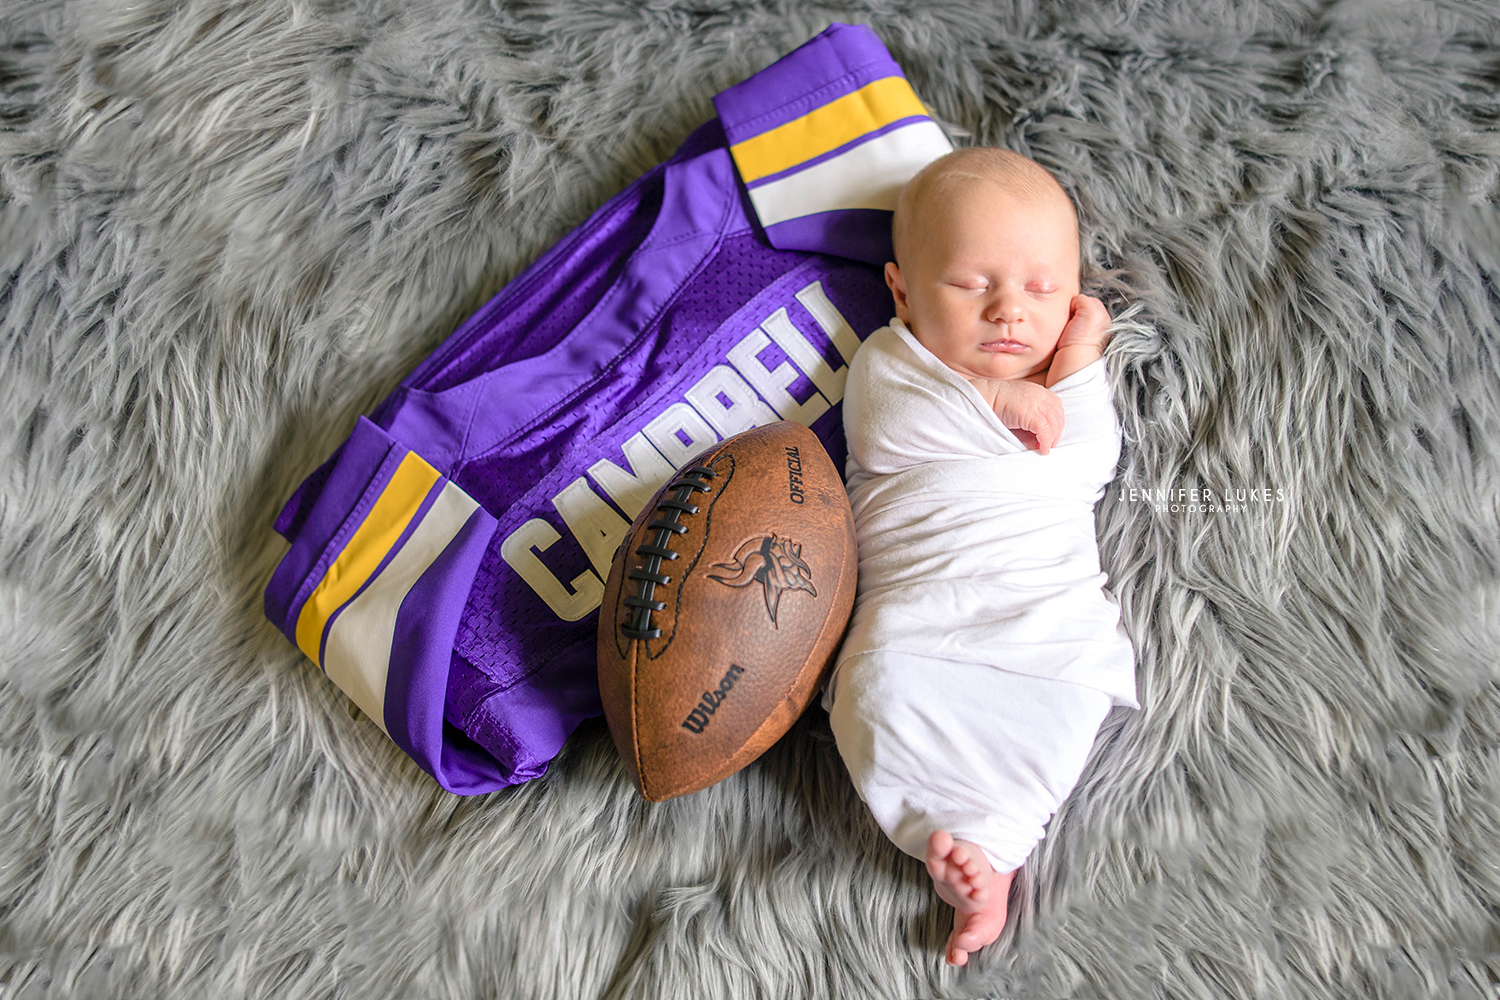 Sammamish in-home photo session of newborn with football and jersey.